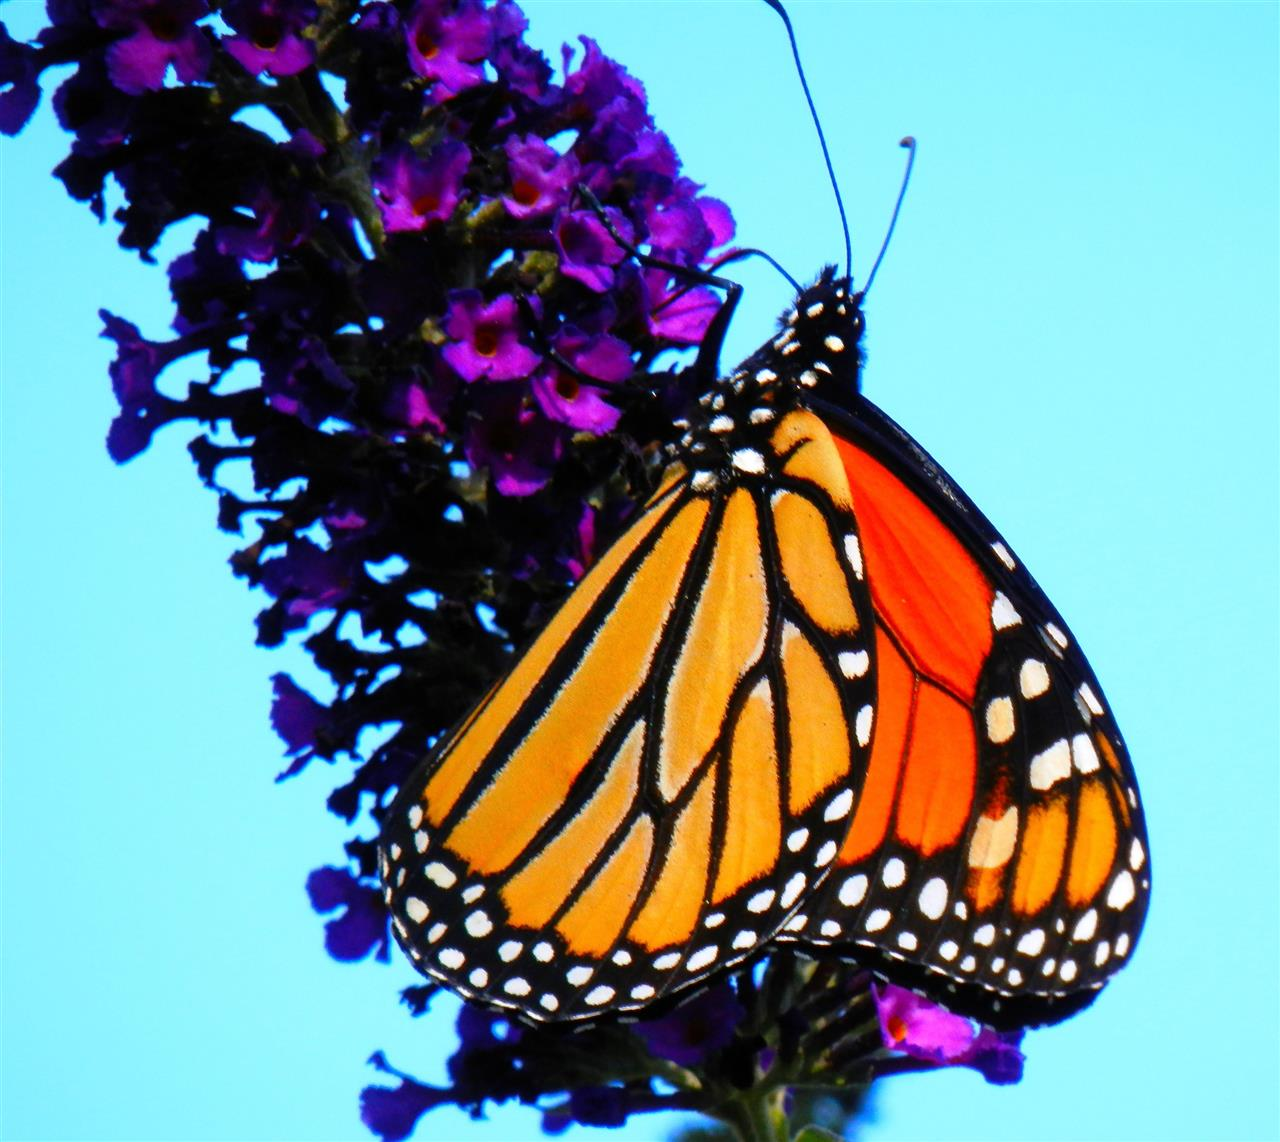 My own backyard comes to life when butterflies visit my butterfly bush.